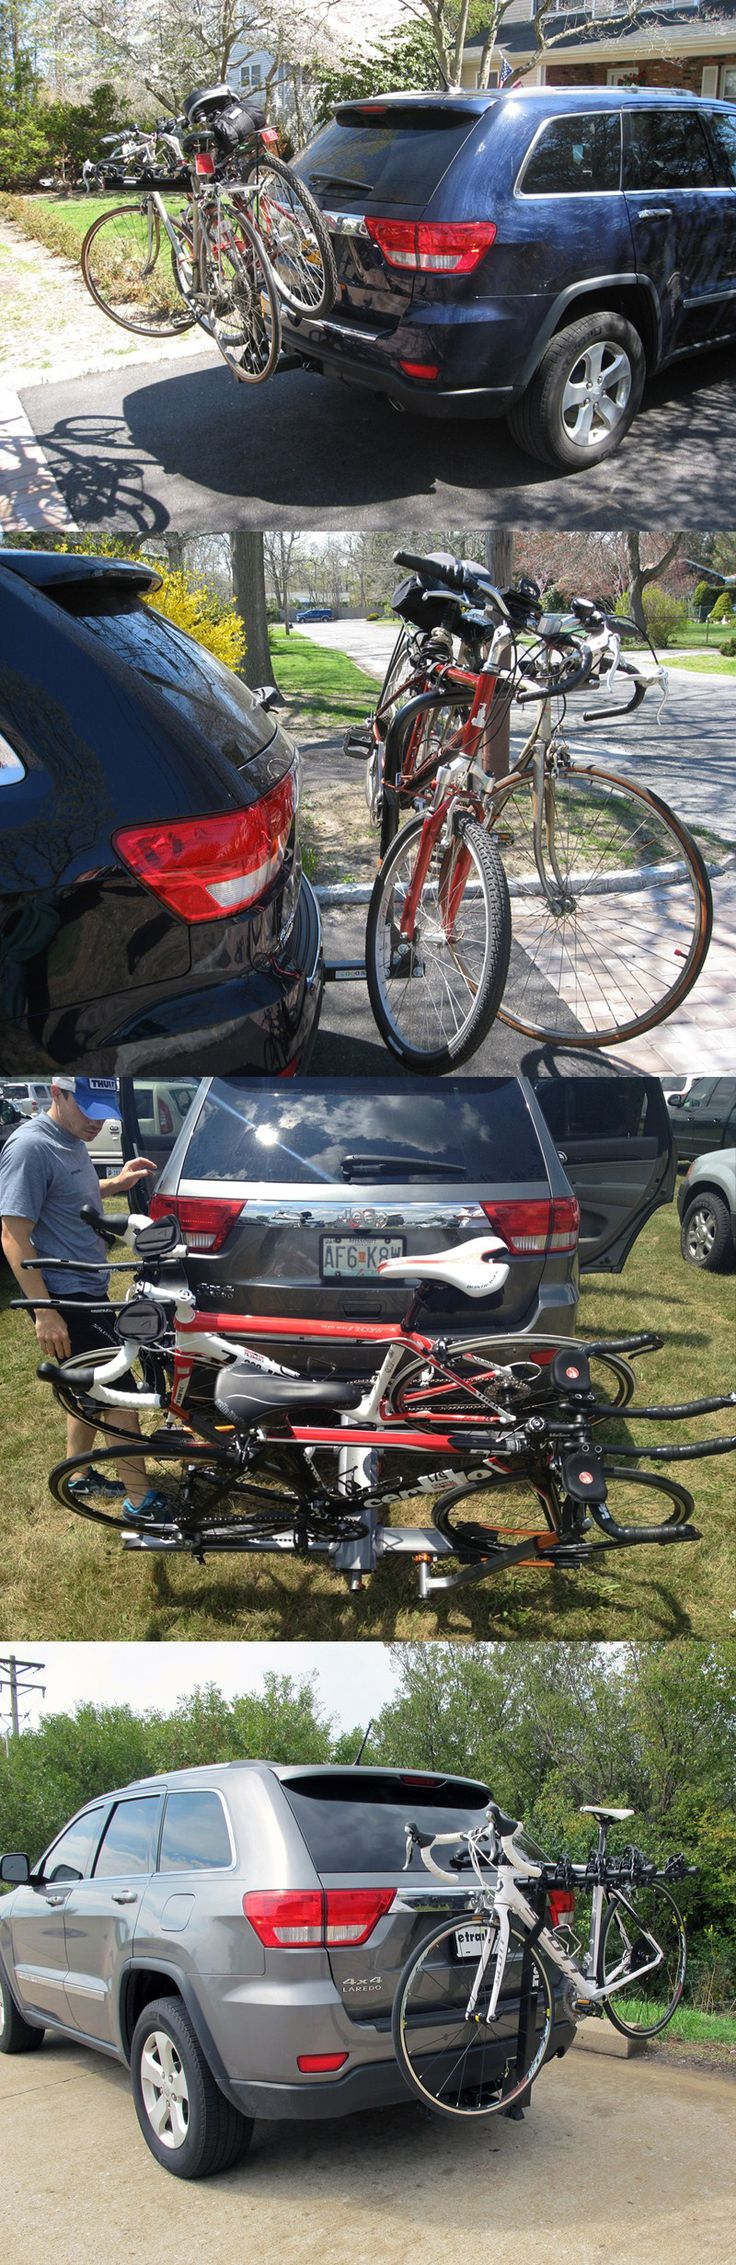 The top 20 most popular bike racks for the jeep grand cherokee based on user reviews and function see why these accessories are the favorites and chose the